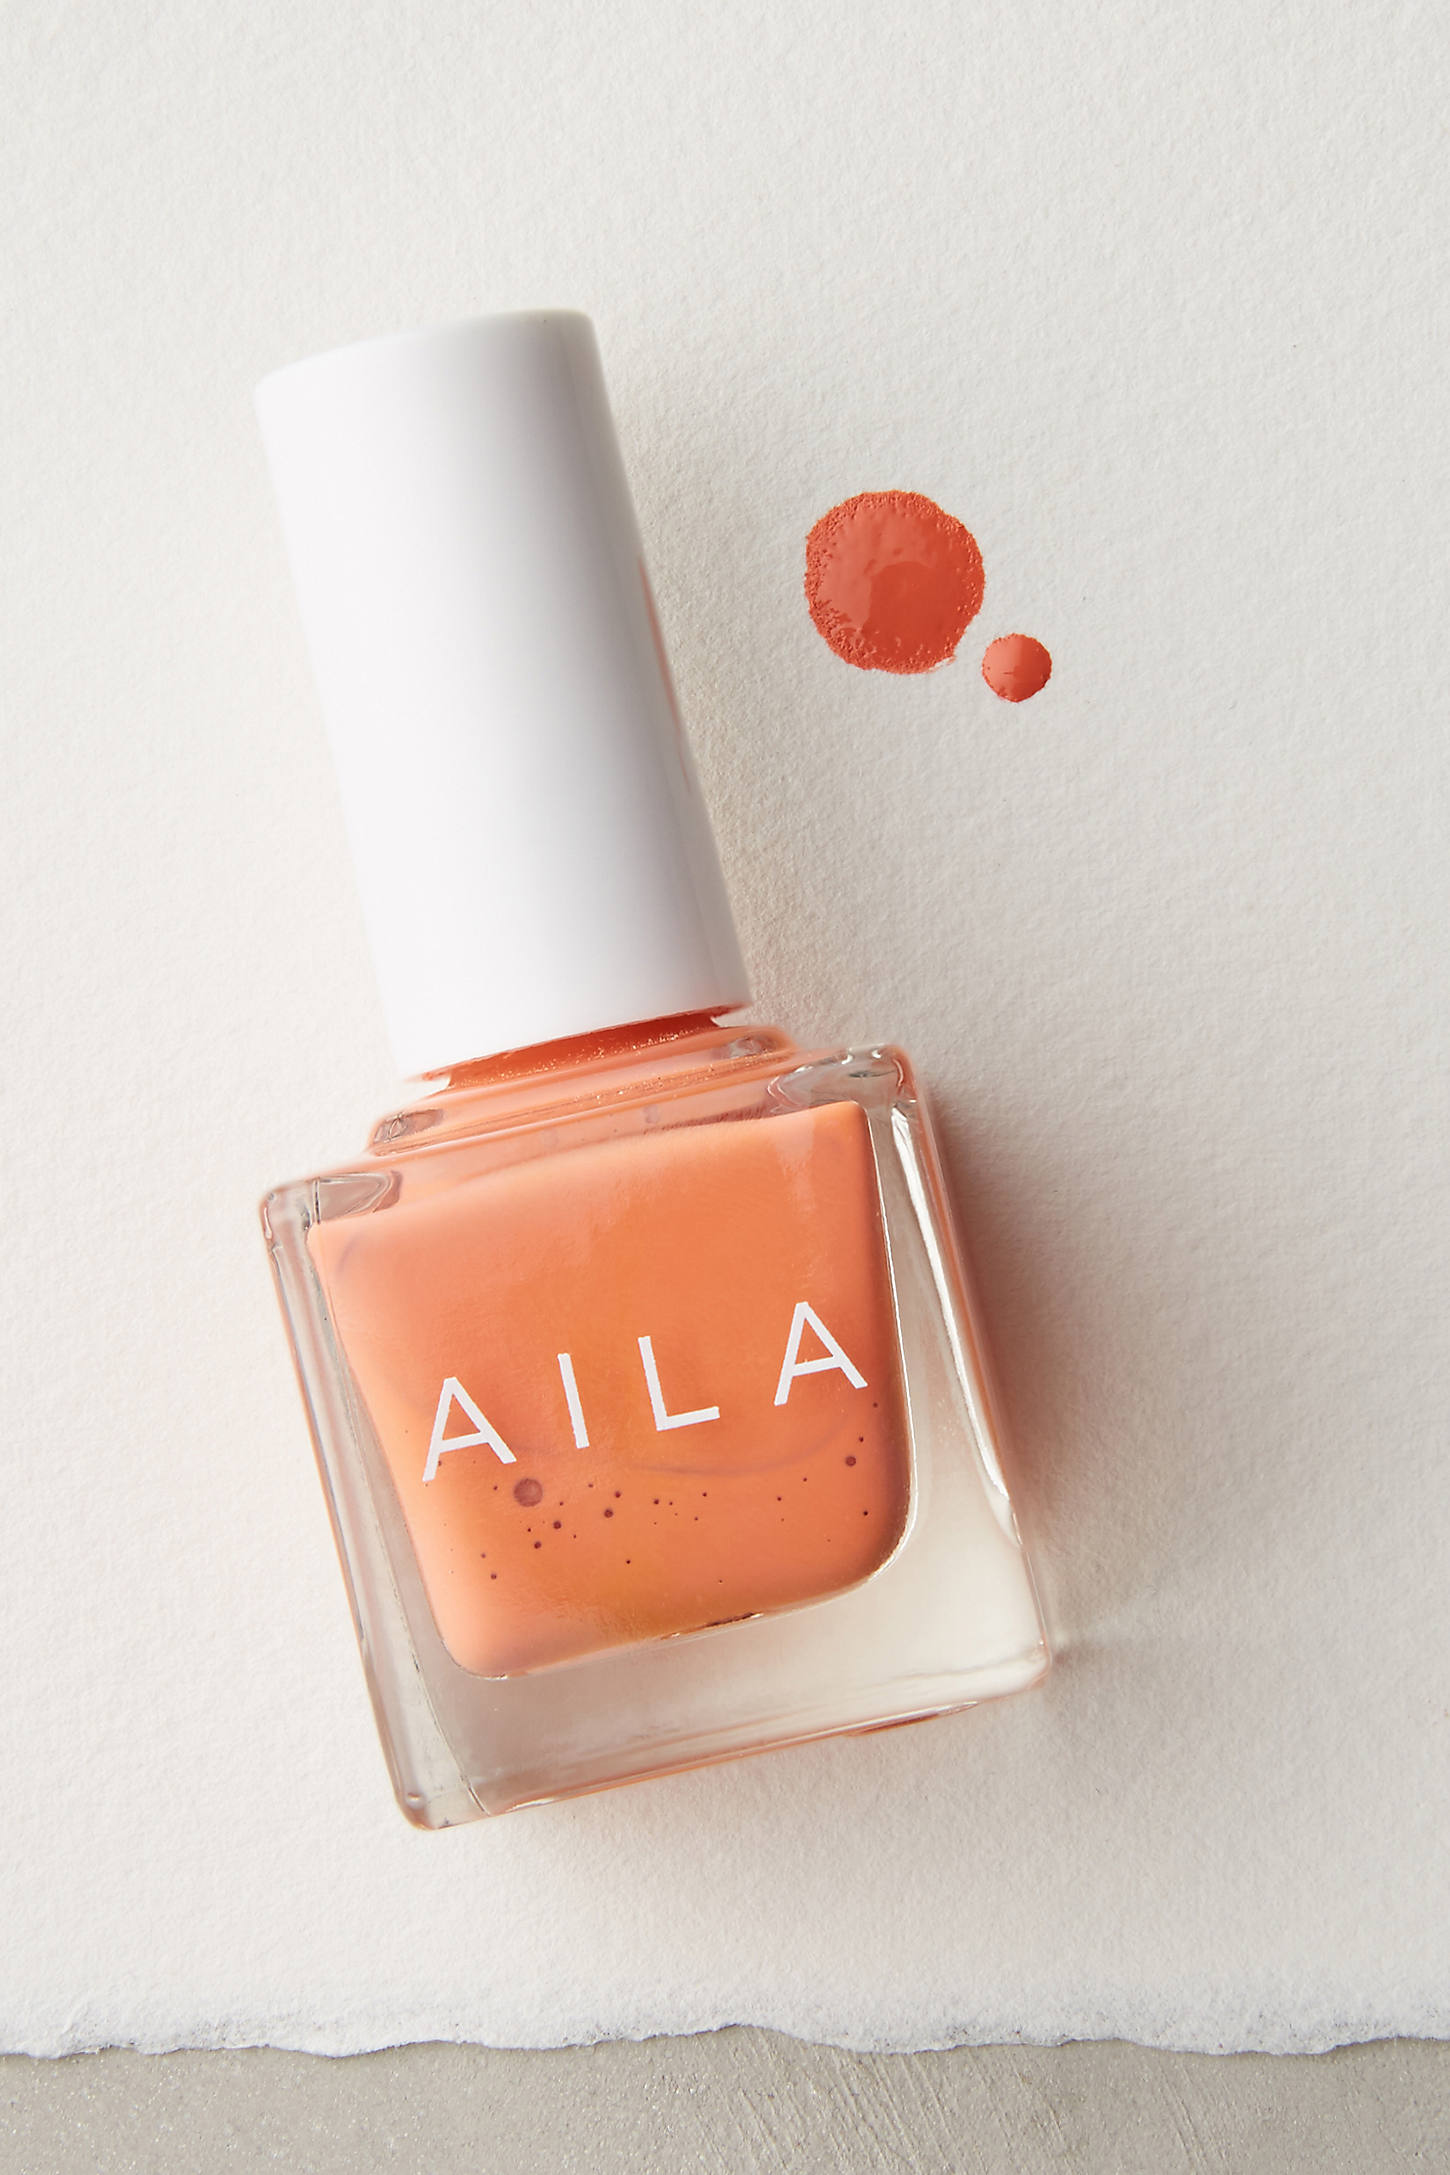 AILA Nail Color